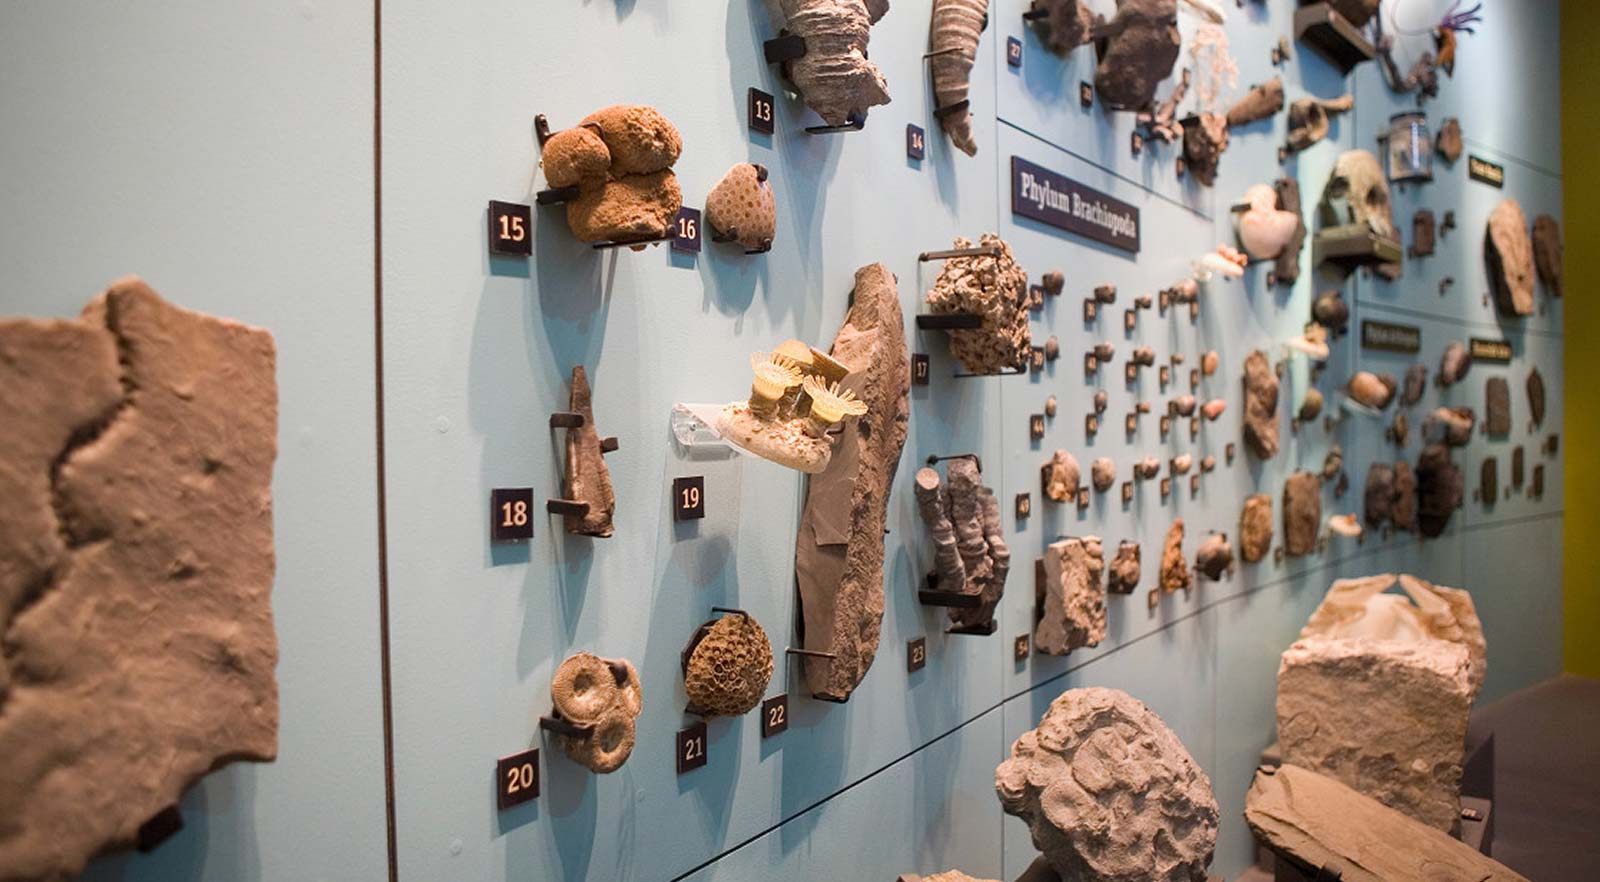 Fossils displayed mounted on a wall